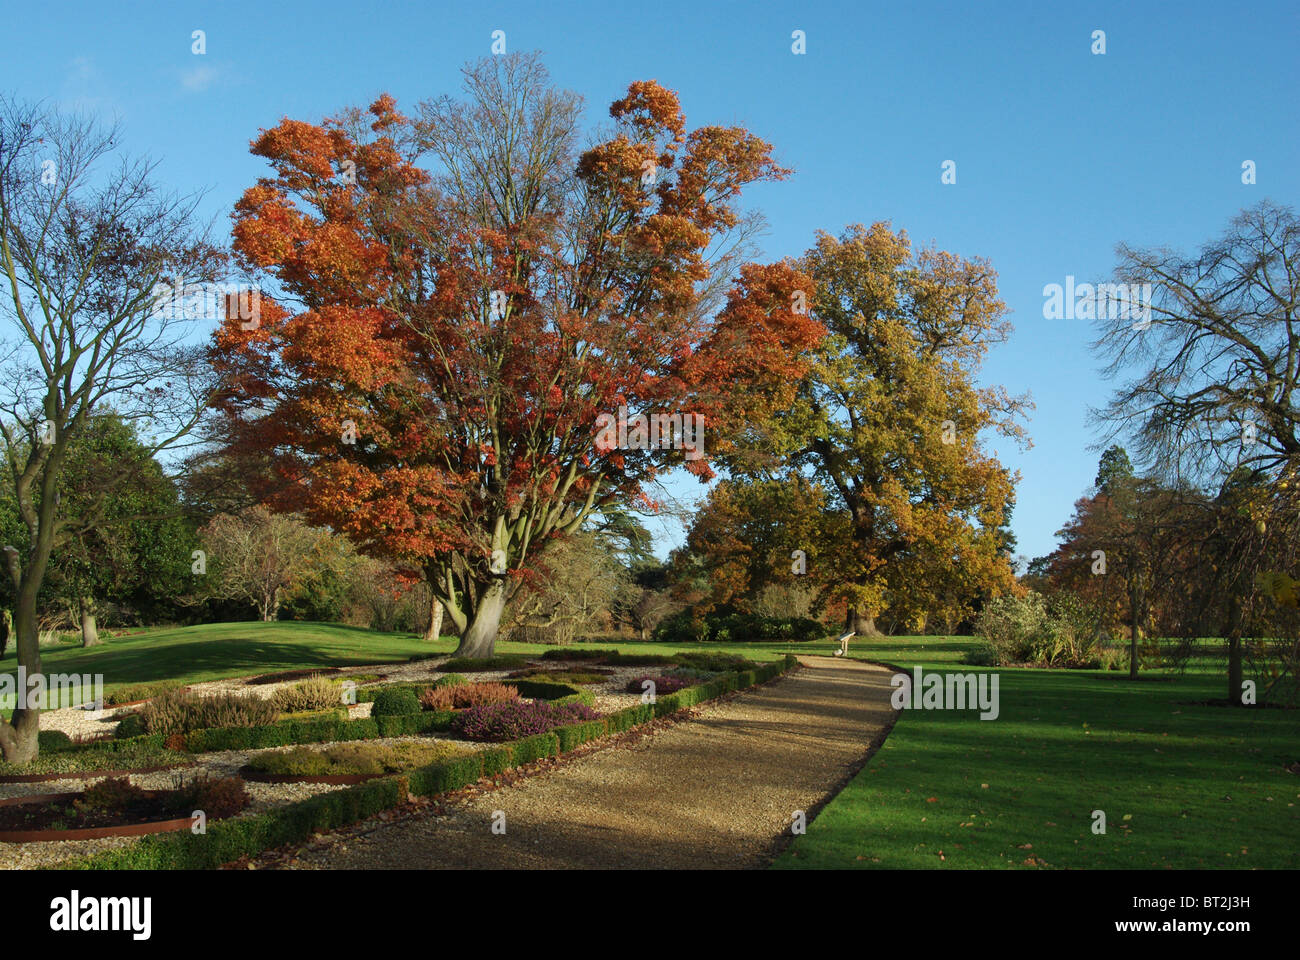 An Acer tree with its Autumn foliage in Woburn Abbey Gardens - Stock Image